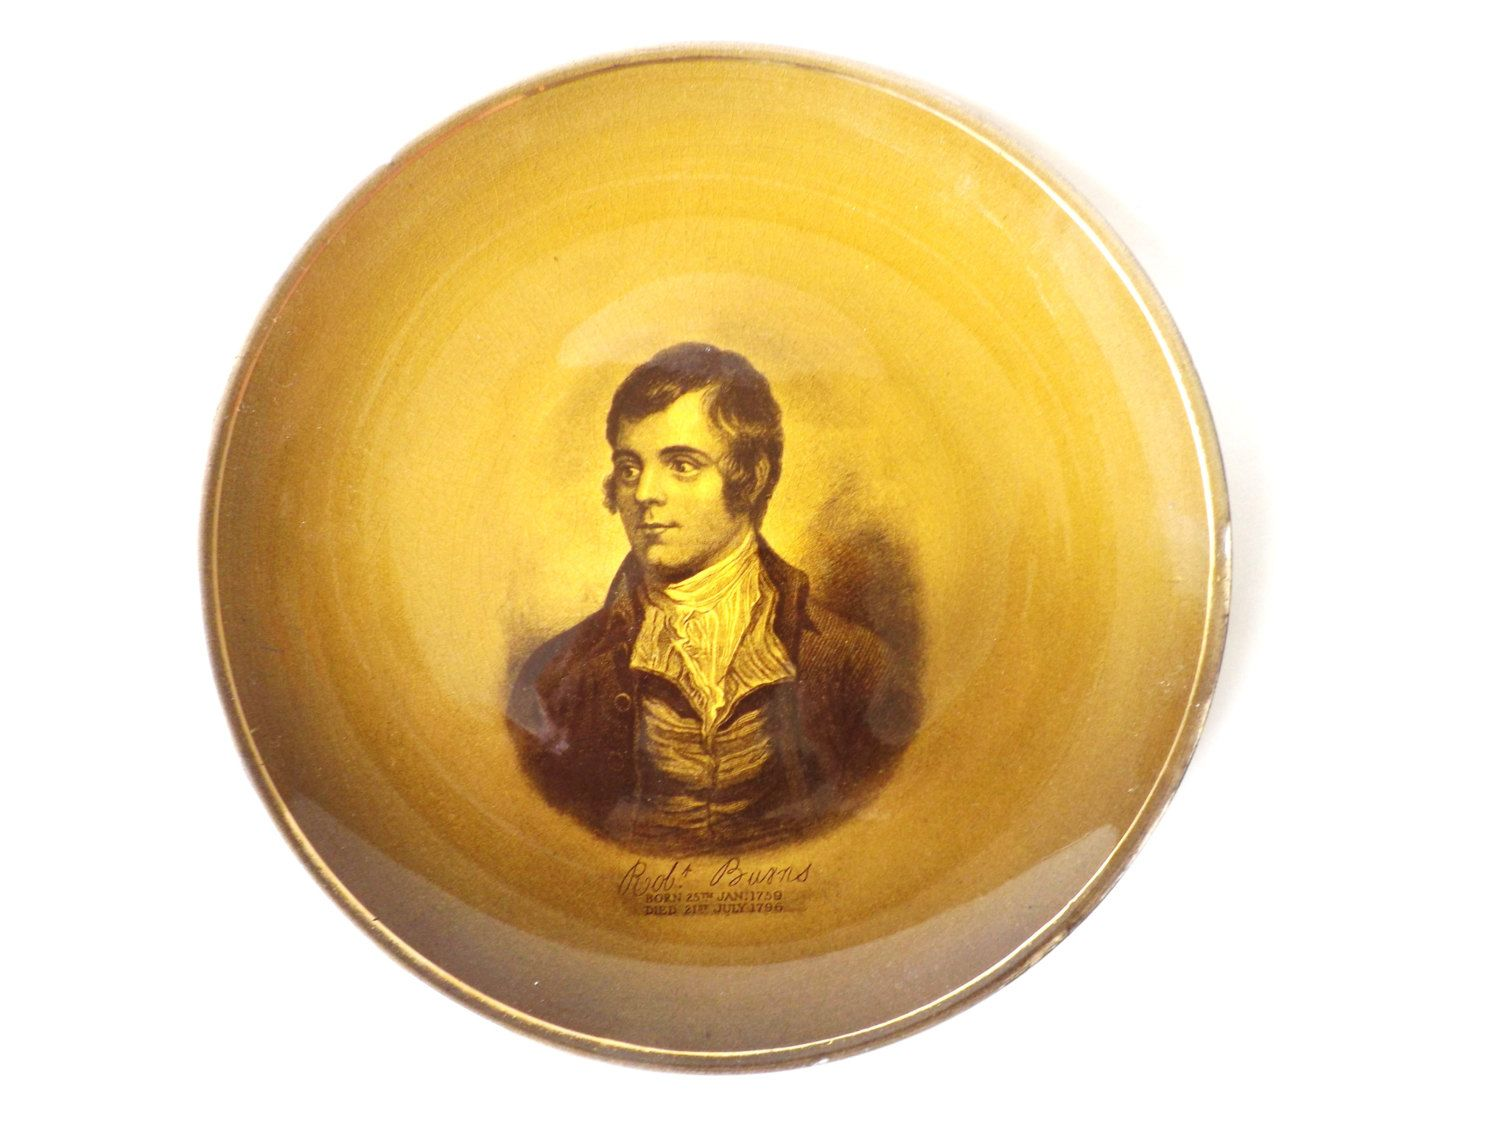 Robert Burns Commemorative Plate, Robbie Burns Scottish Poet ...